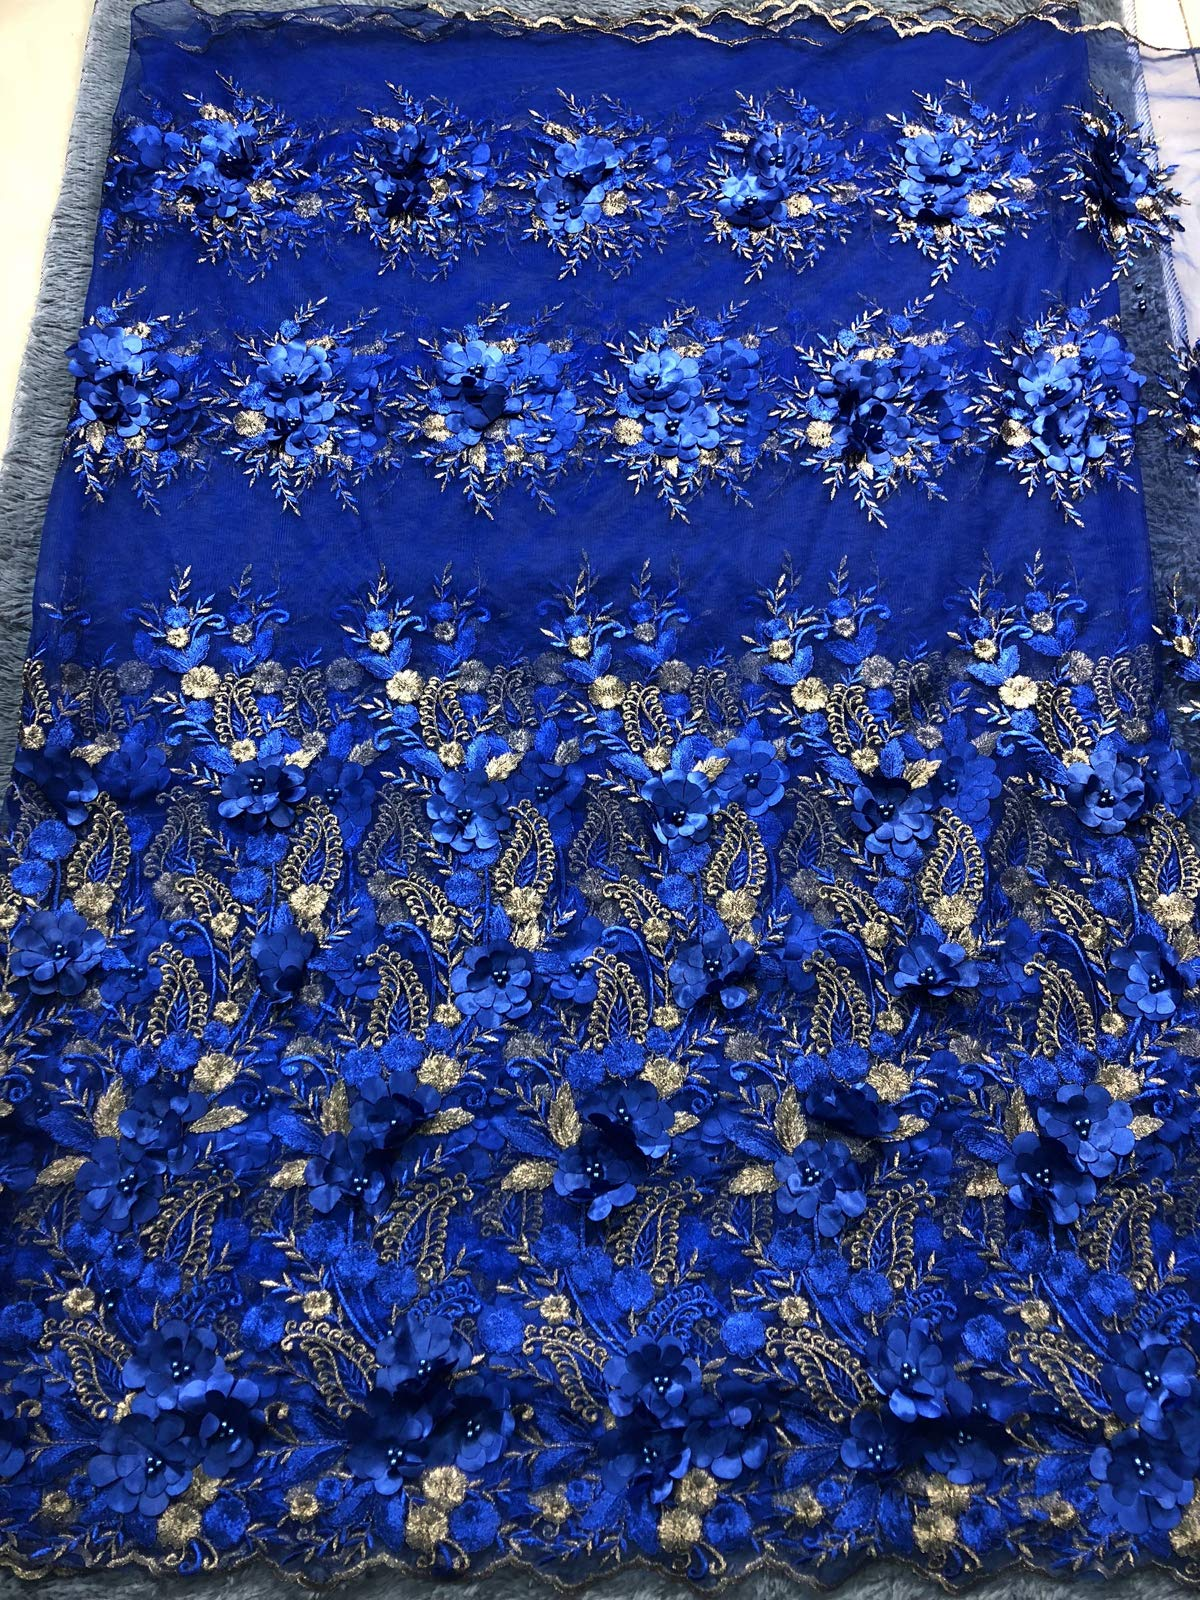 Milylace 5 Yards 3D Floral African Lace Fabric Nigerian Embroidered Mesh Lace Fabric with Beads for Wedding (Royal Blue) by Milylace (Image #3)